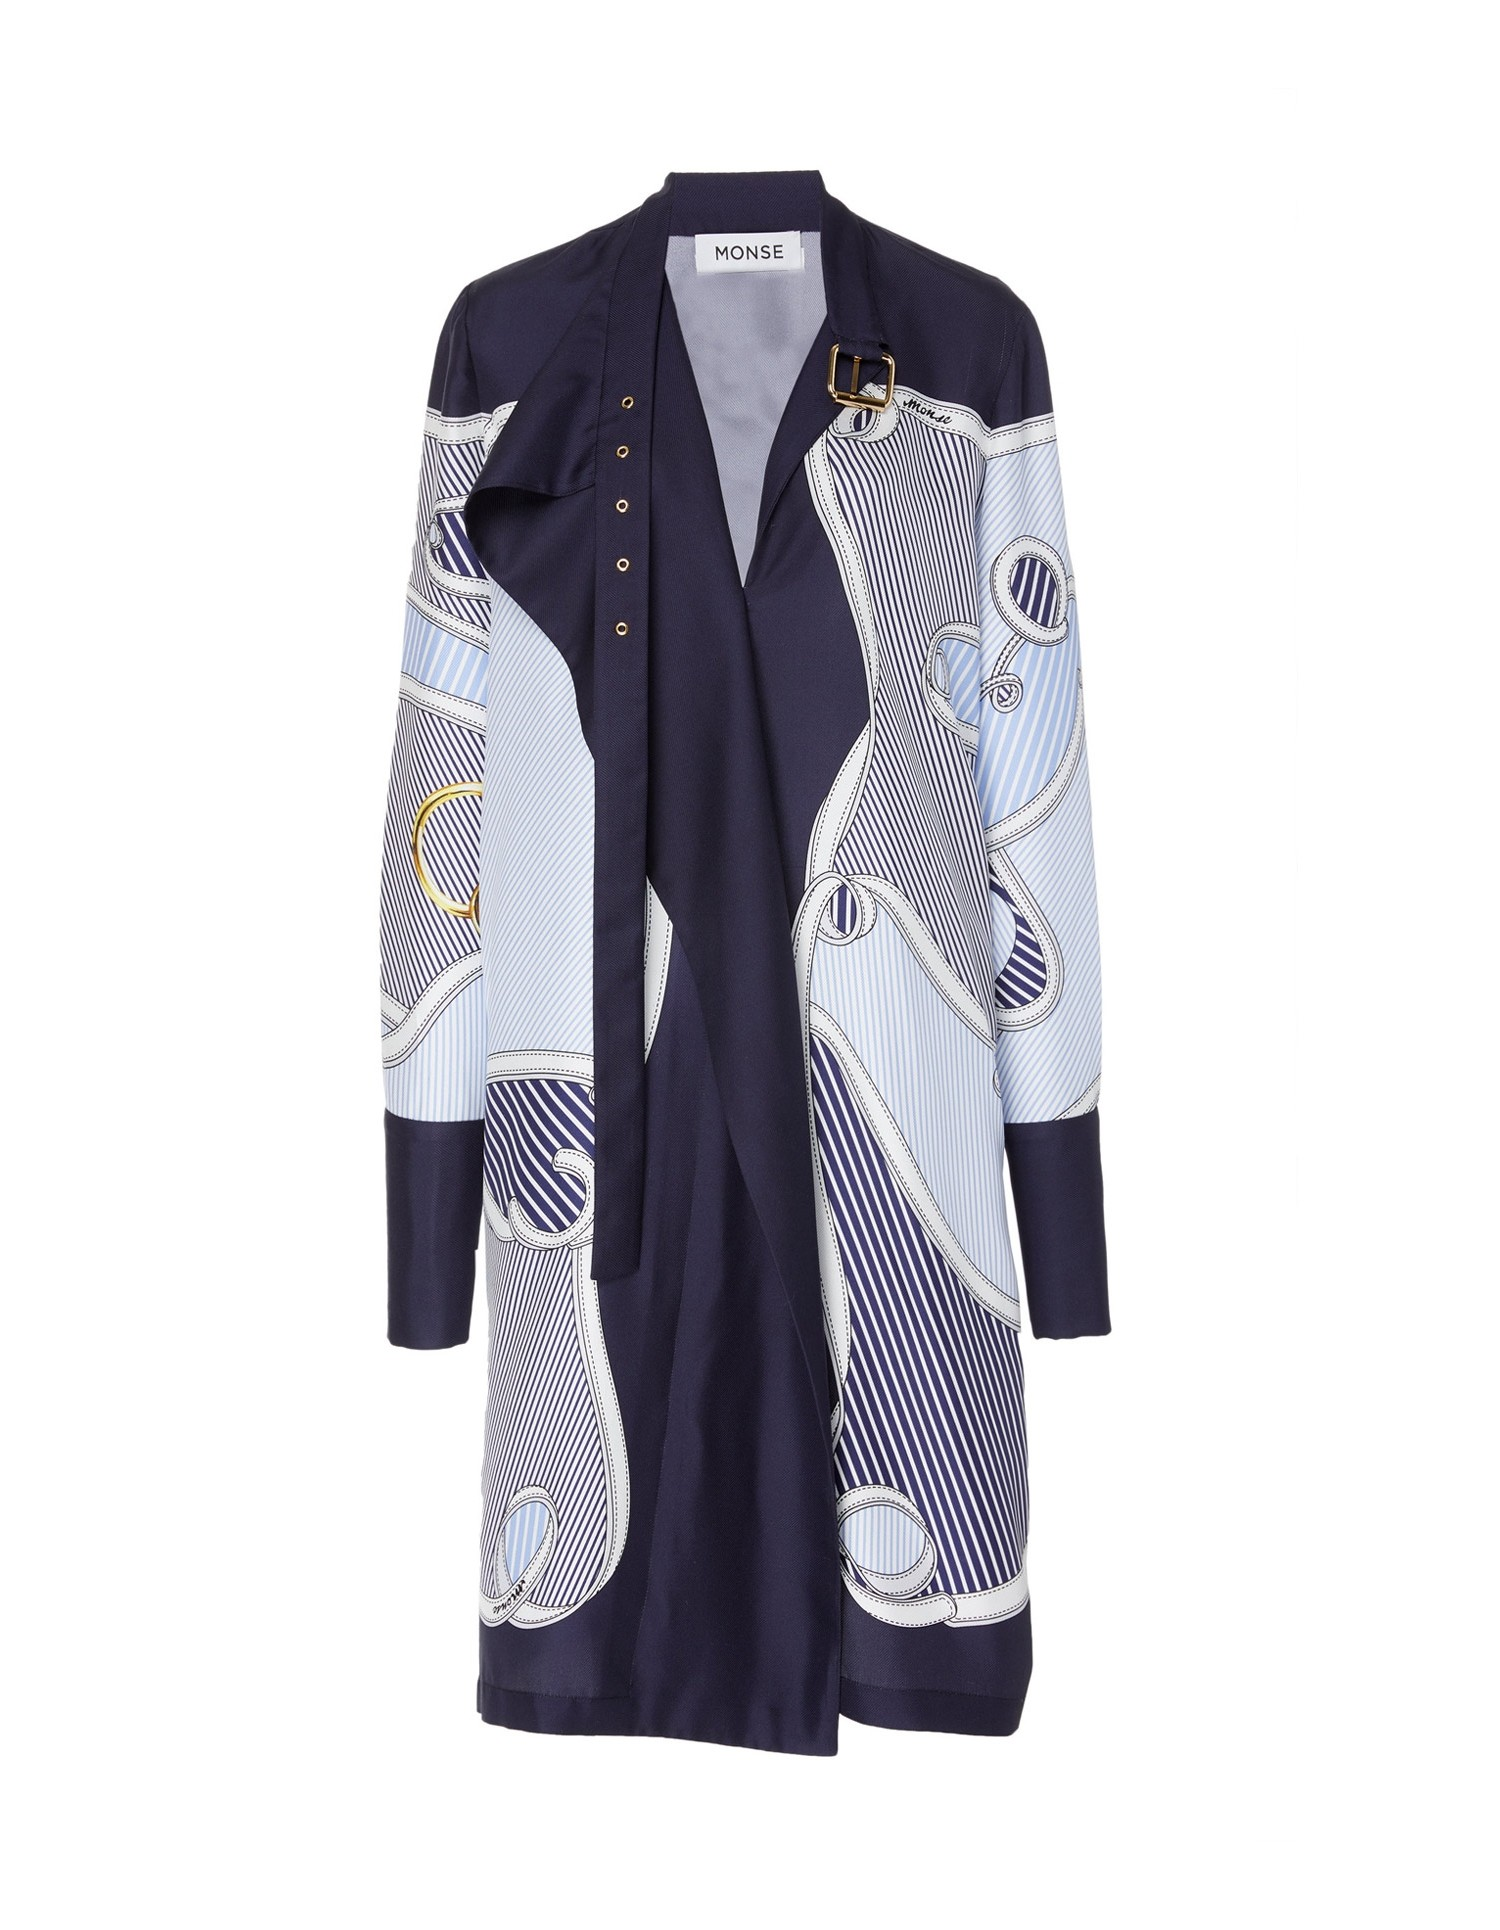 MONSE Belt Tie Pluto Print Shirtdress on Model Front